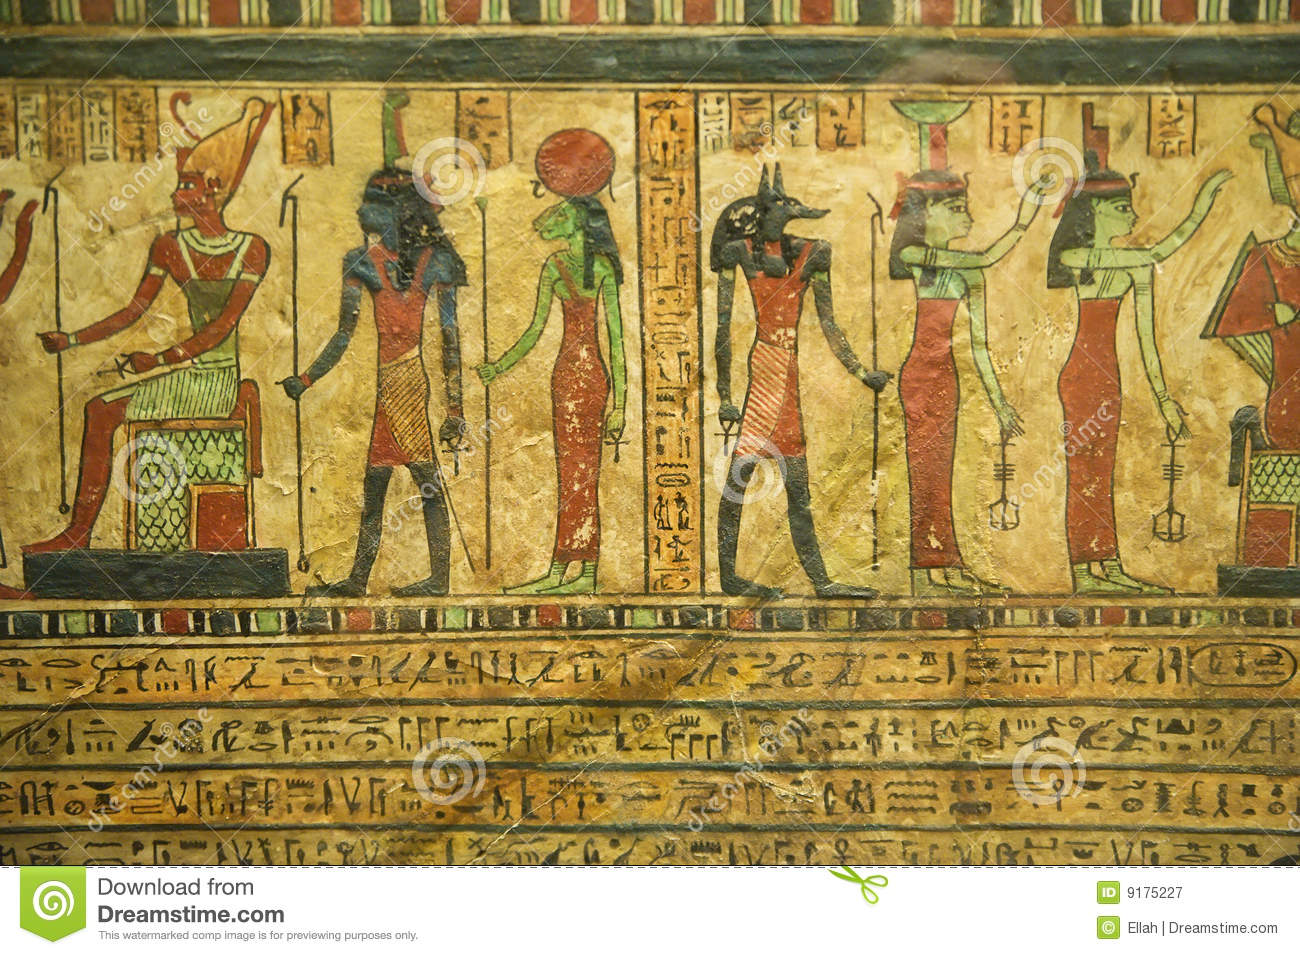 Ancient egyptian art stock photo. Image of historic, culture - 25849338